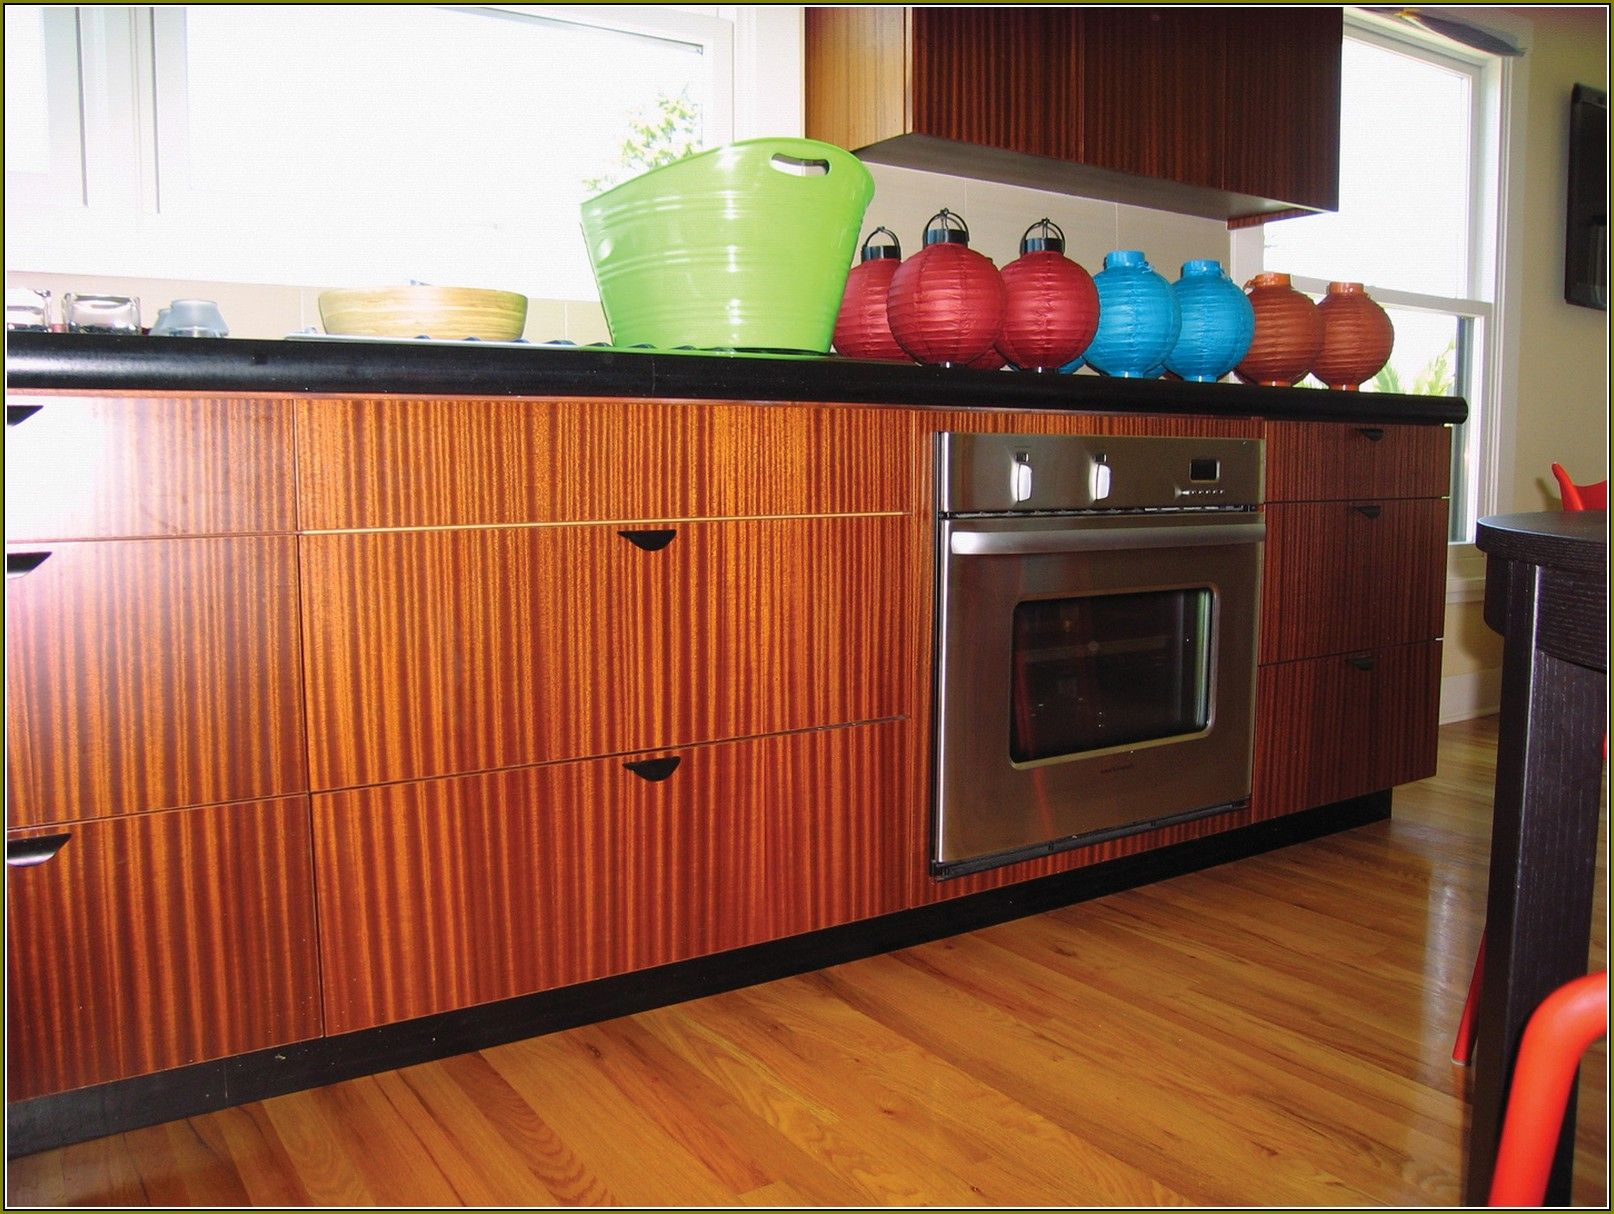 Pin By Nj Kitchens And Baths On Kitchens By Nj Kitchens And Baths Mahogany Kitchen Kitchen Design Modern Kitchen Design